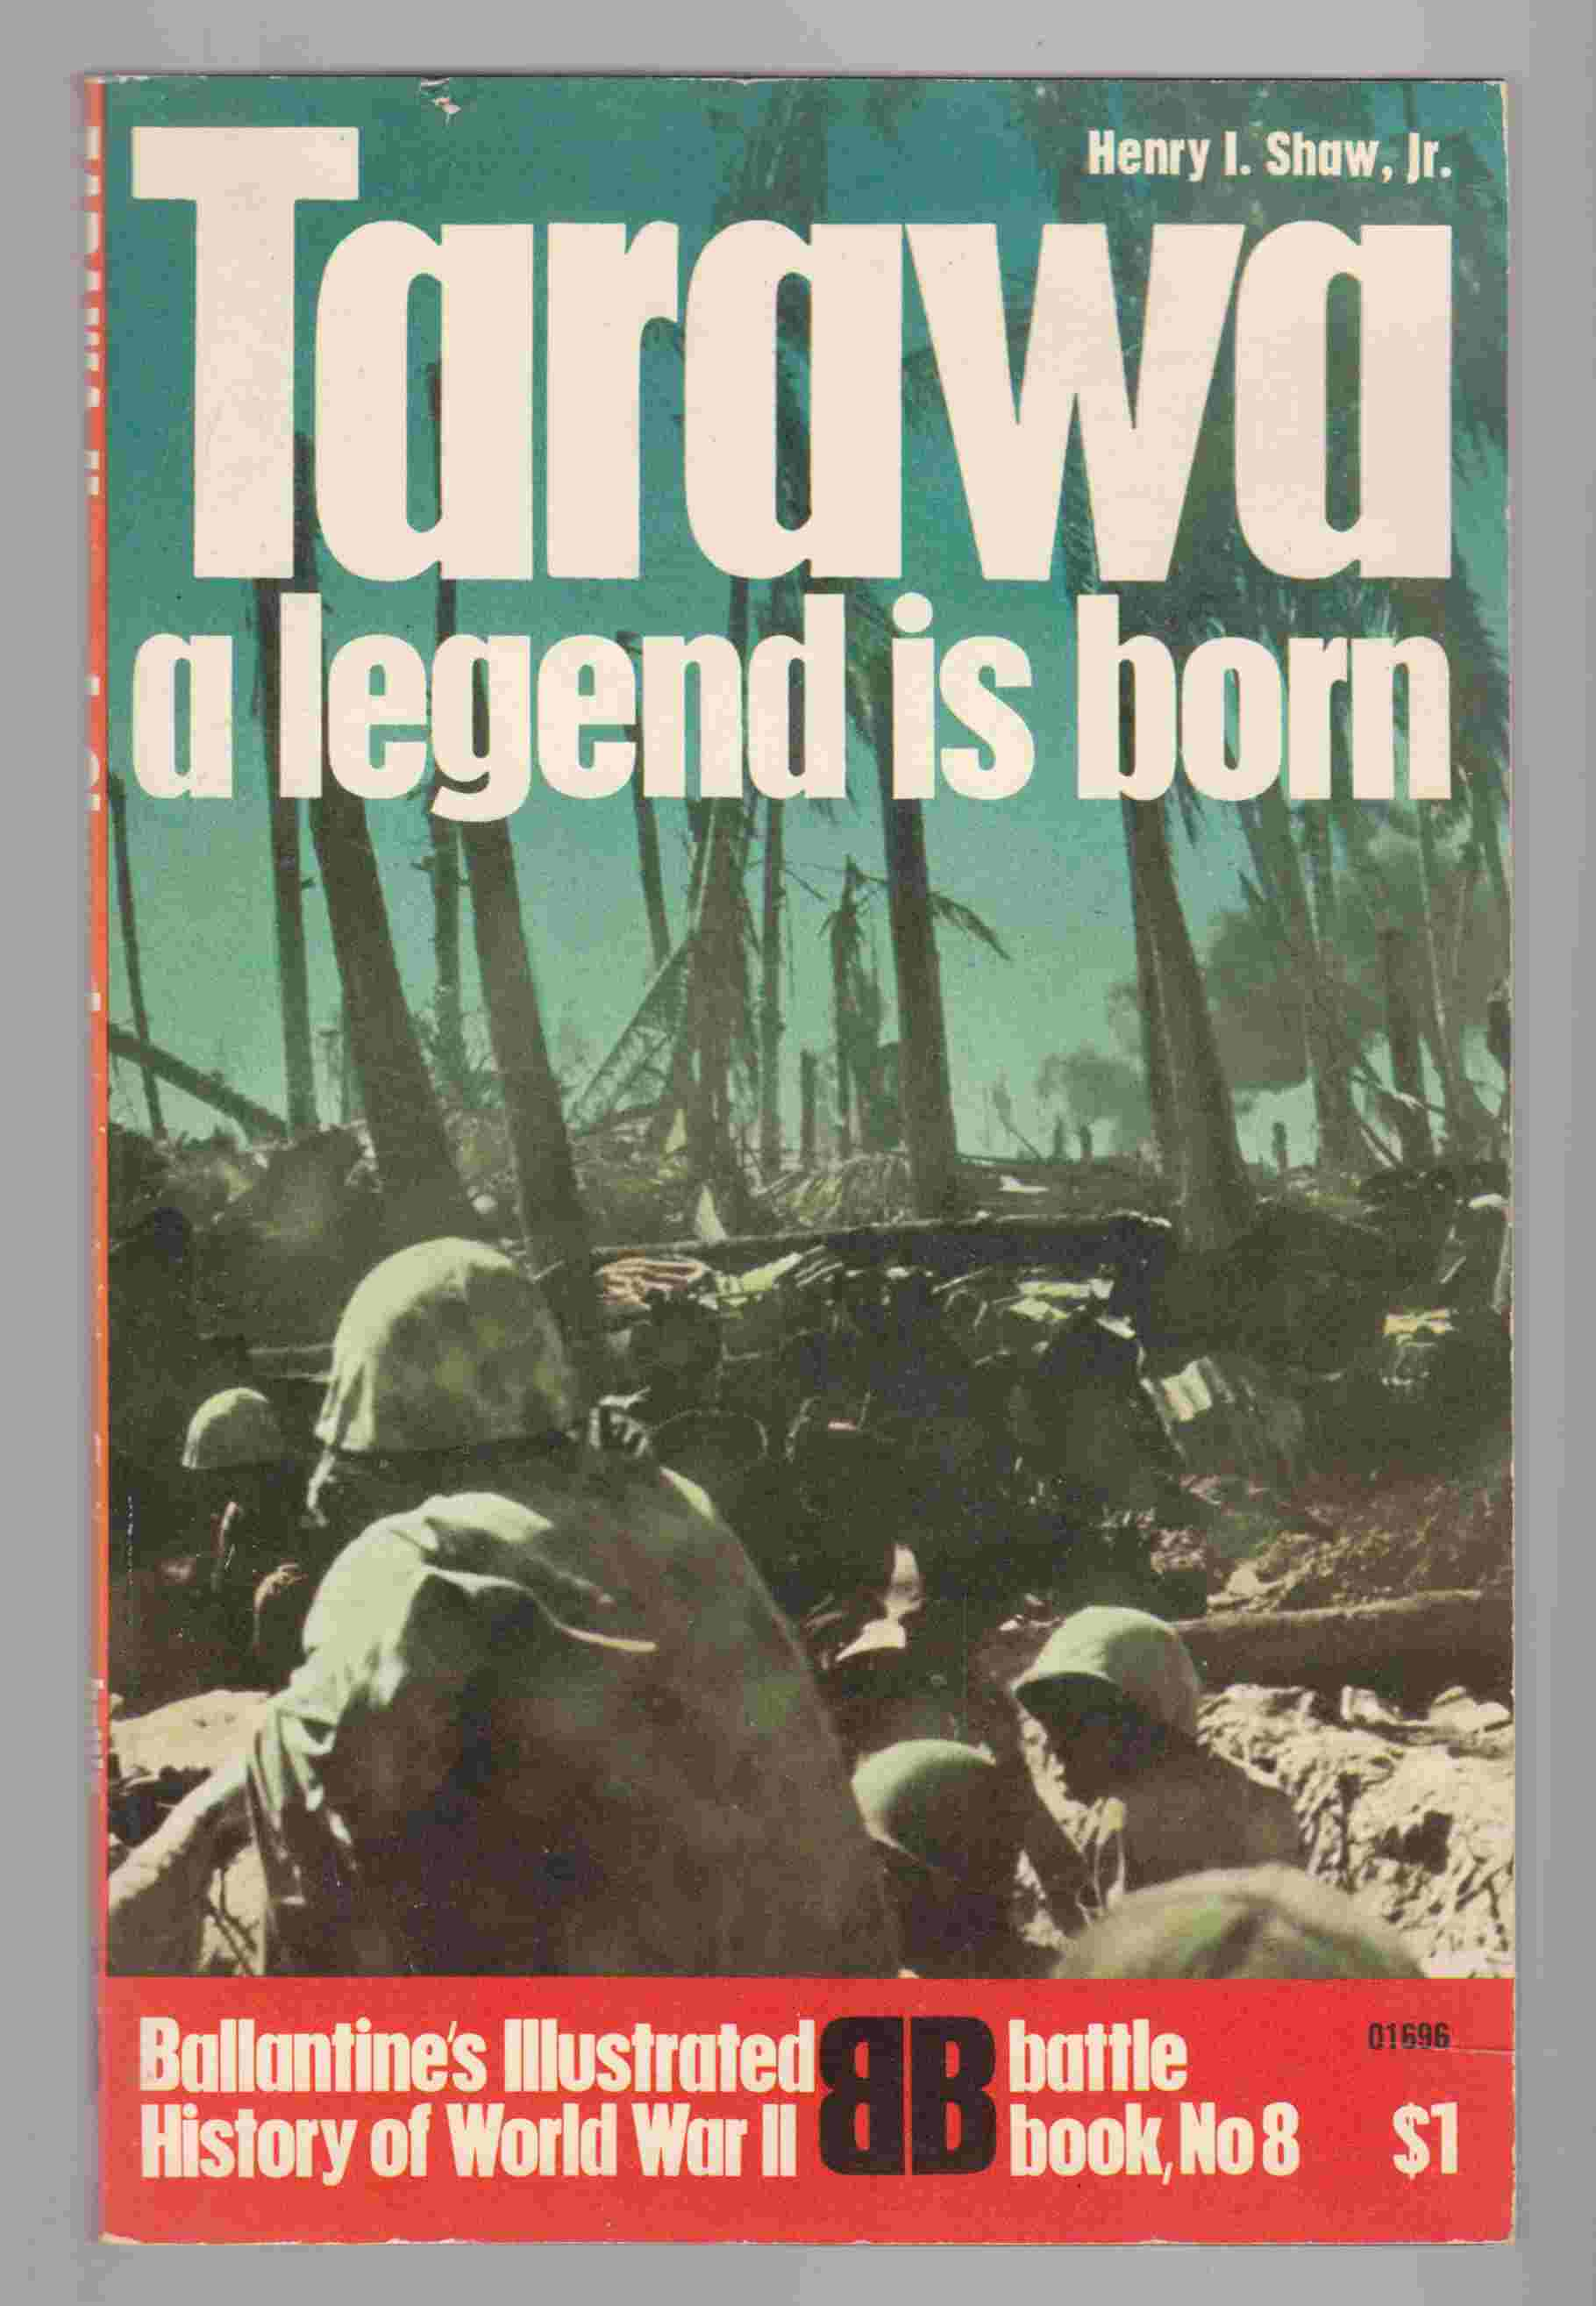 Image for Tarawa:  A Legend is Born